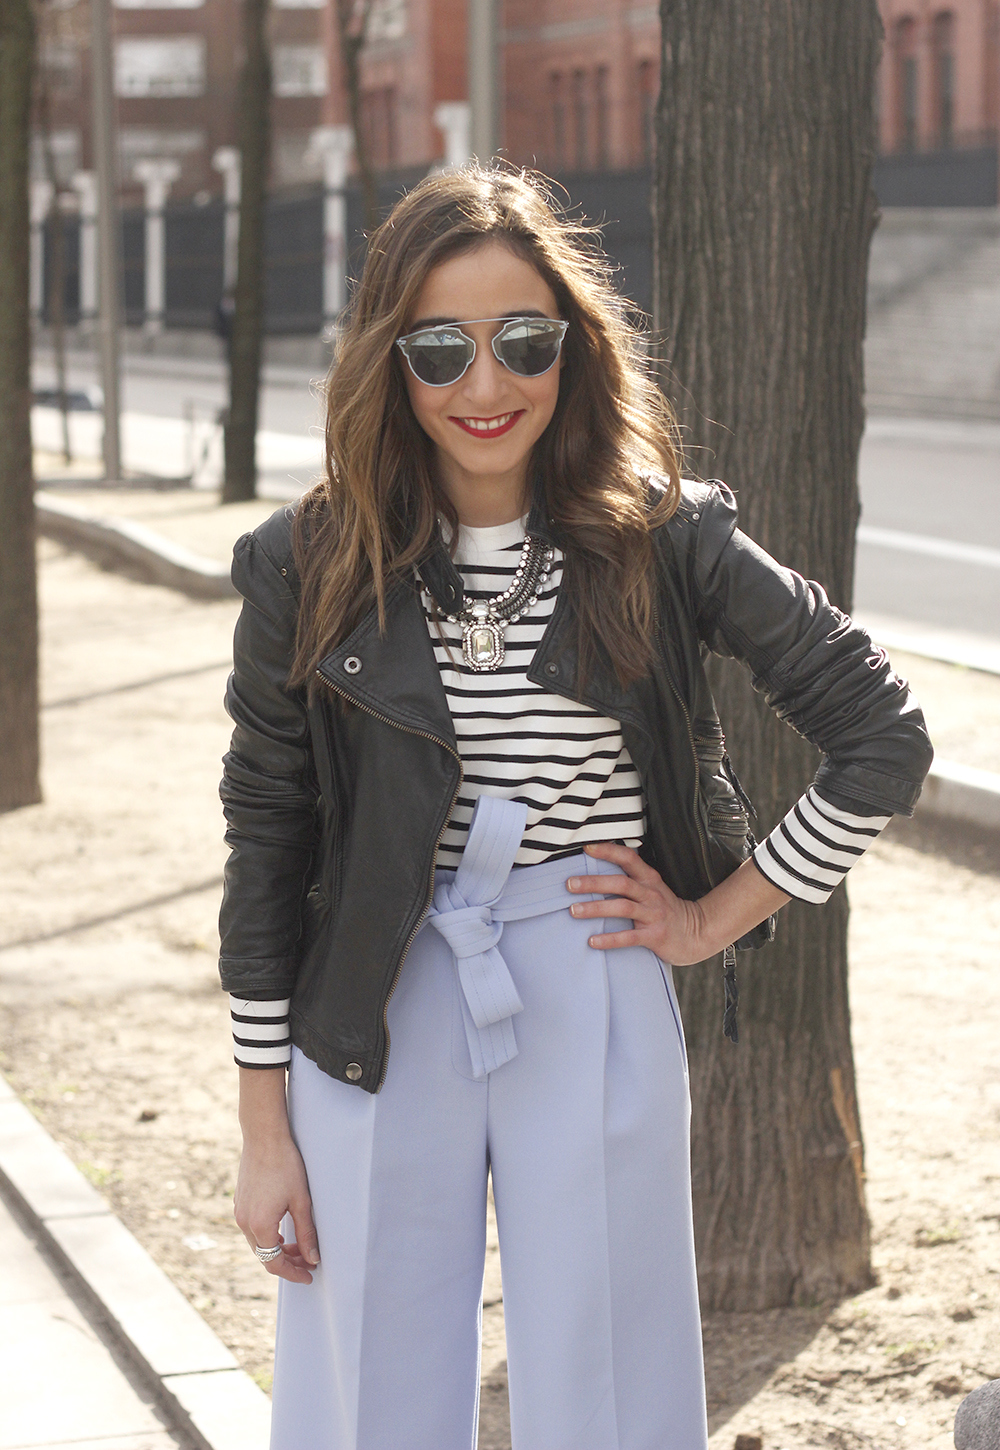 Light Blue Pallazzo pants t-shirt stripes black heels biker jacket dior so real sunglasses outfit style fashion07